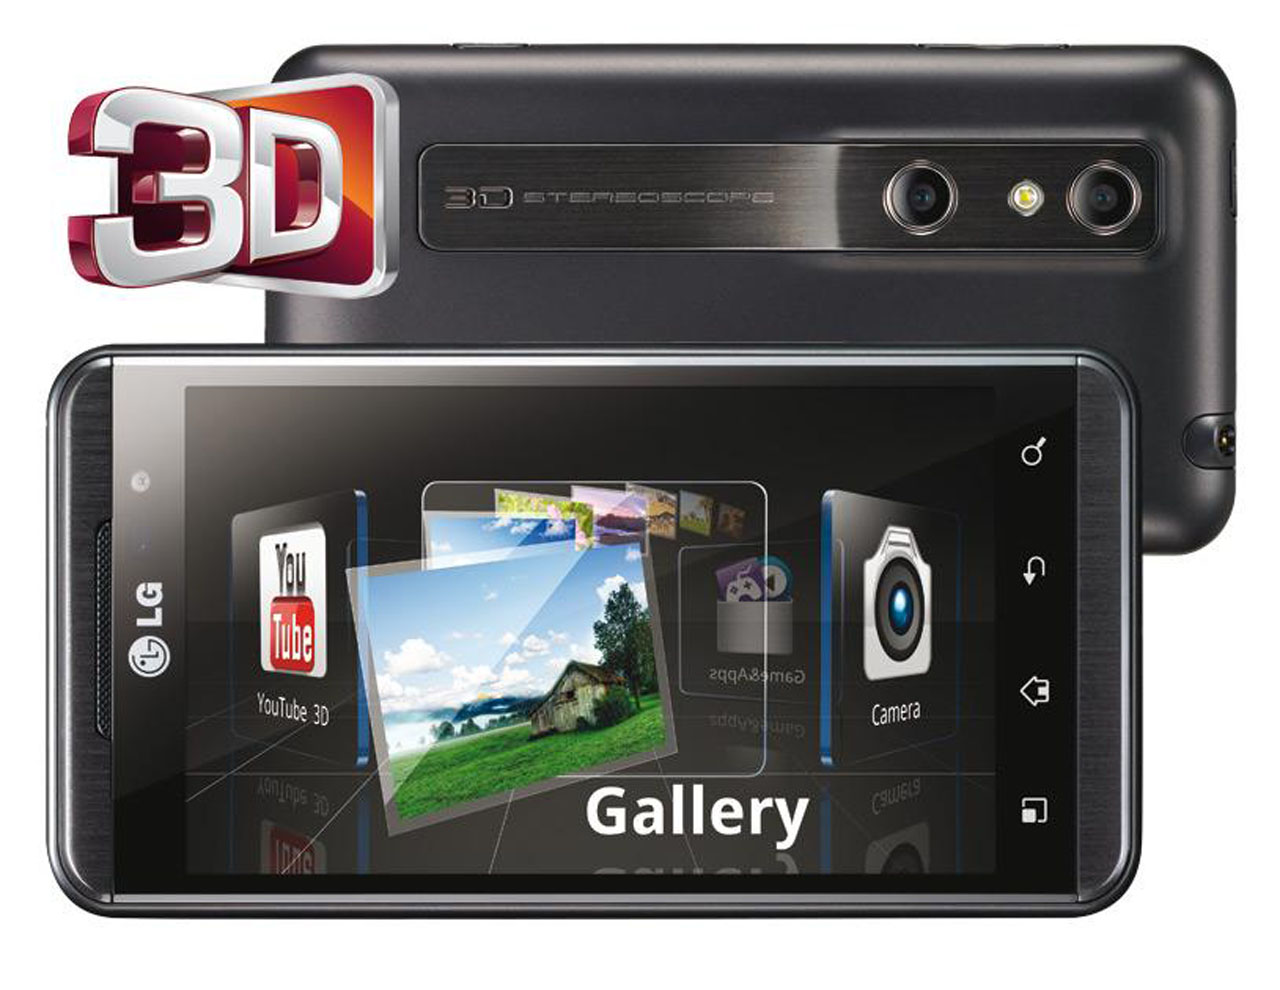 Lg optimus 3d review features and specifications